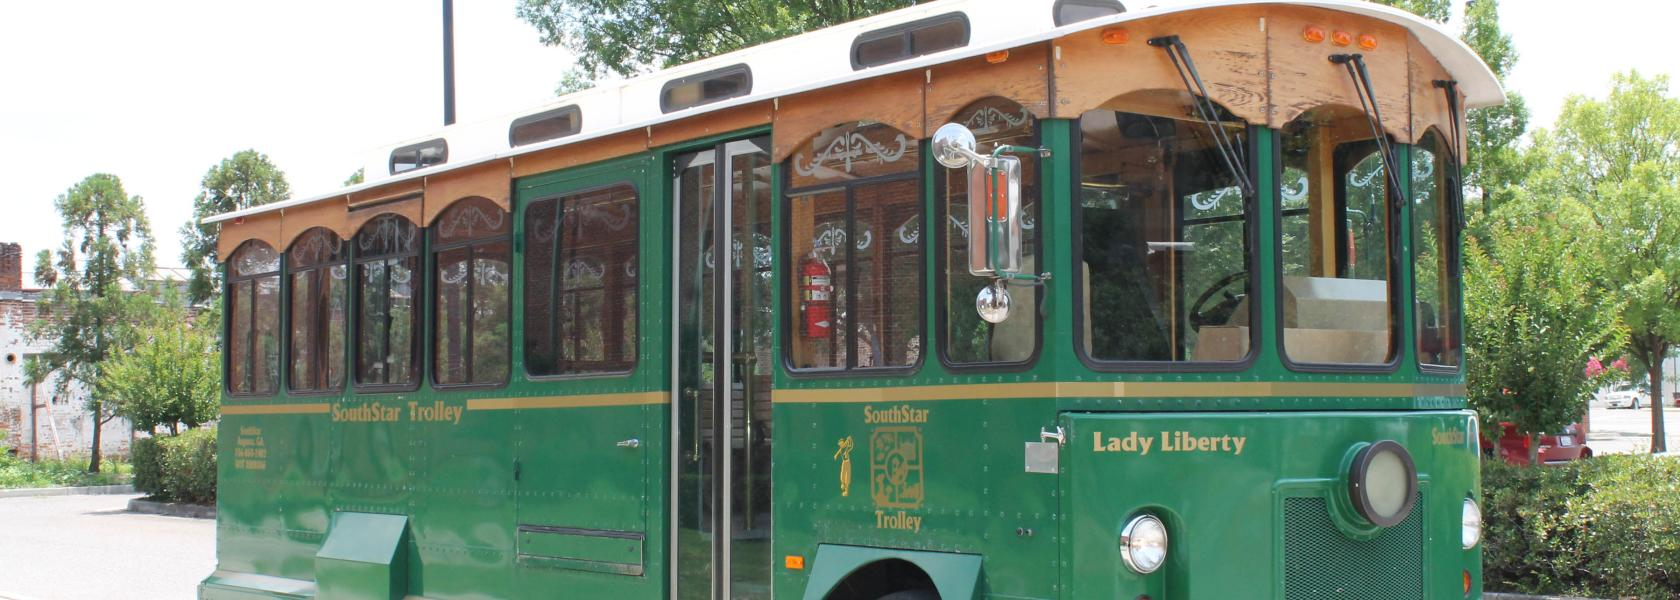 lady liberty south star trolley